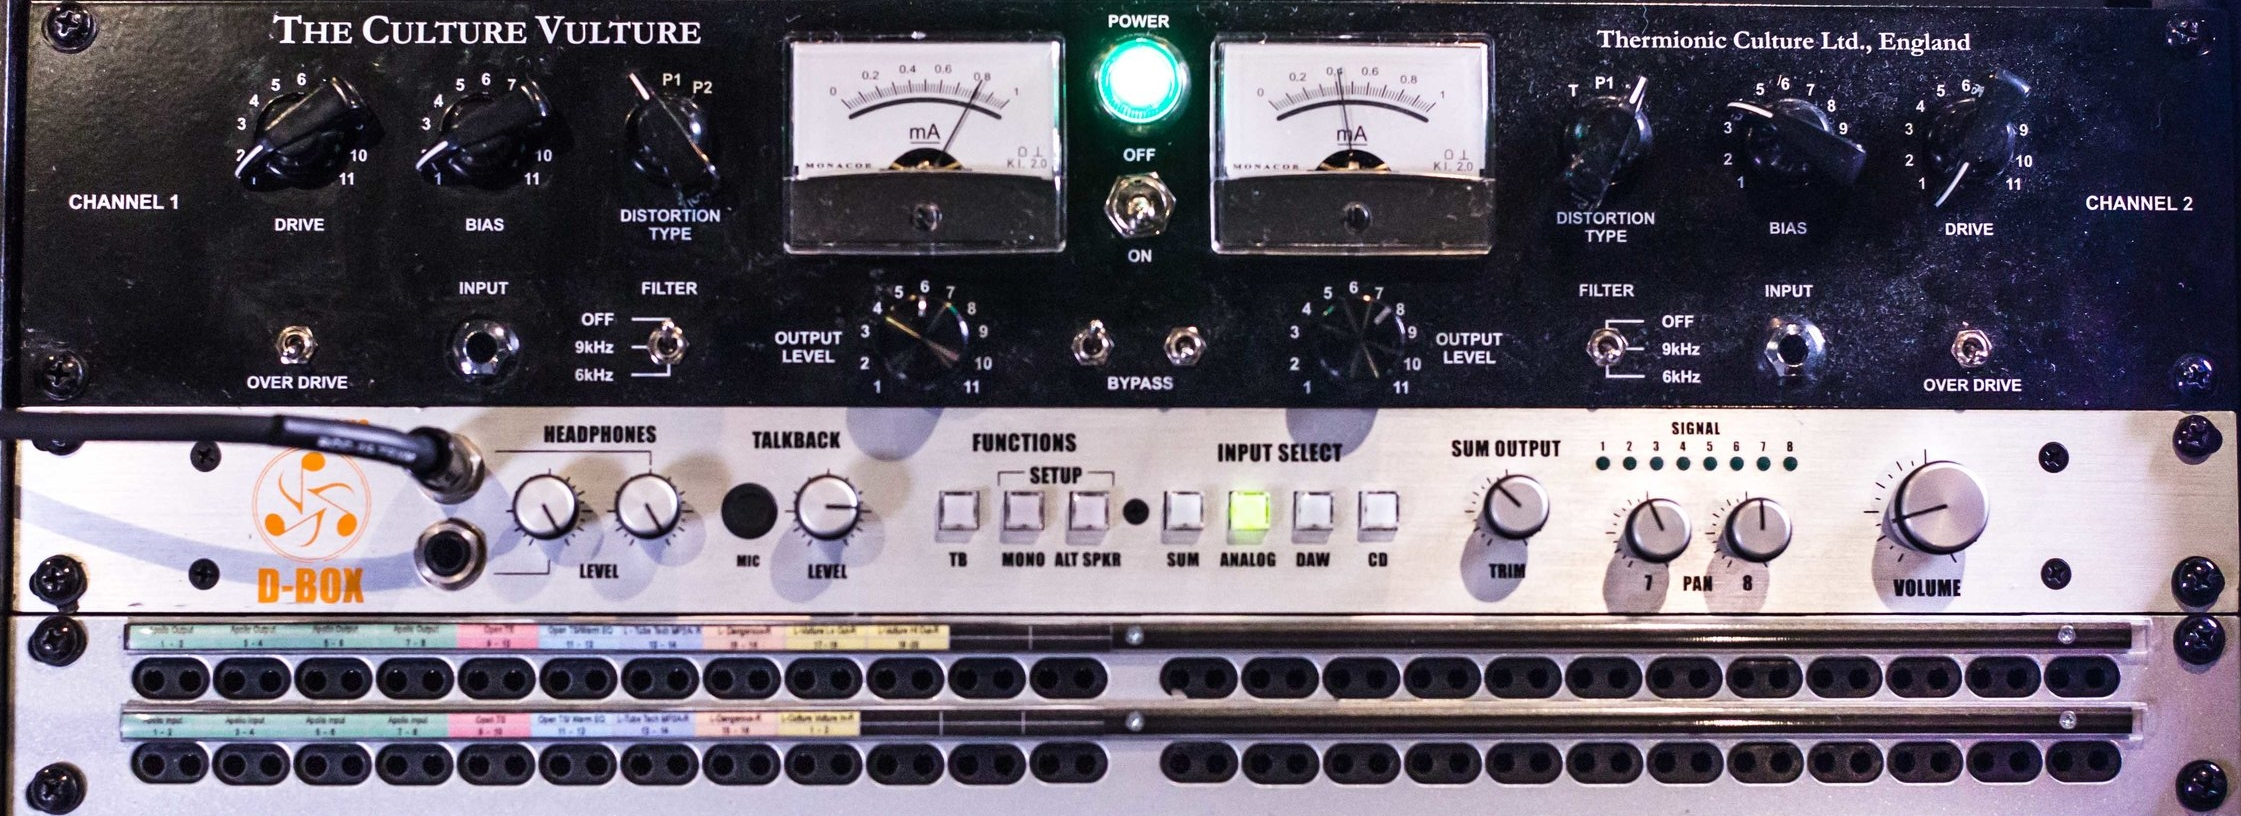 Thermionic Culture Vulture  Dangerous Music D-BOX  REDCO TT/DB25 96PT Patch Bay